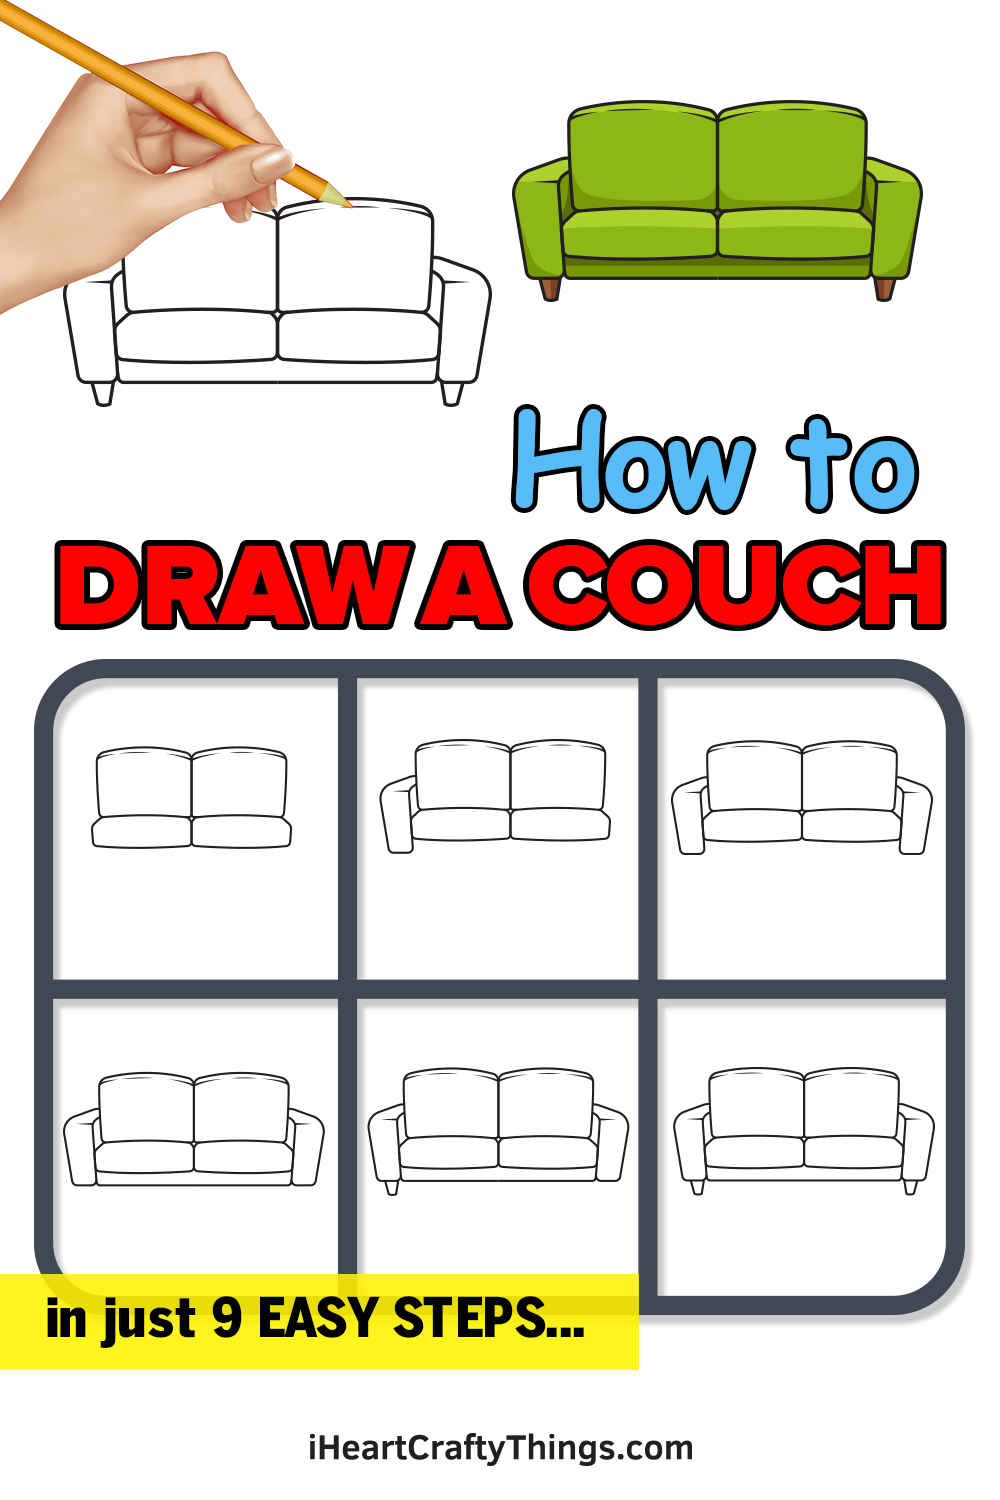 How to Draw a Couch in 9 Easy Steps